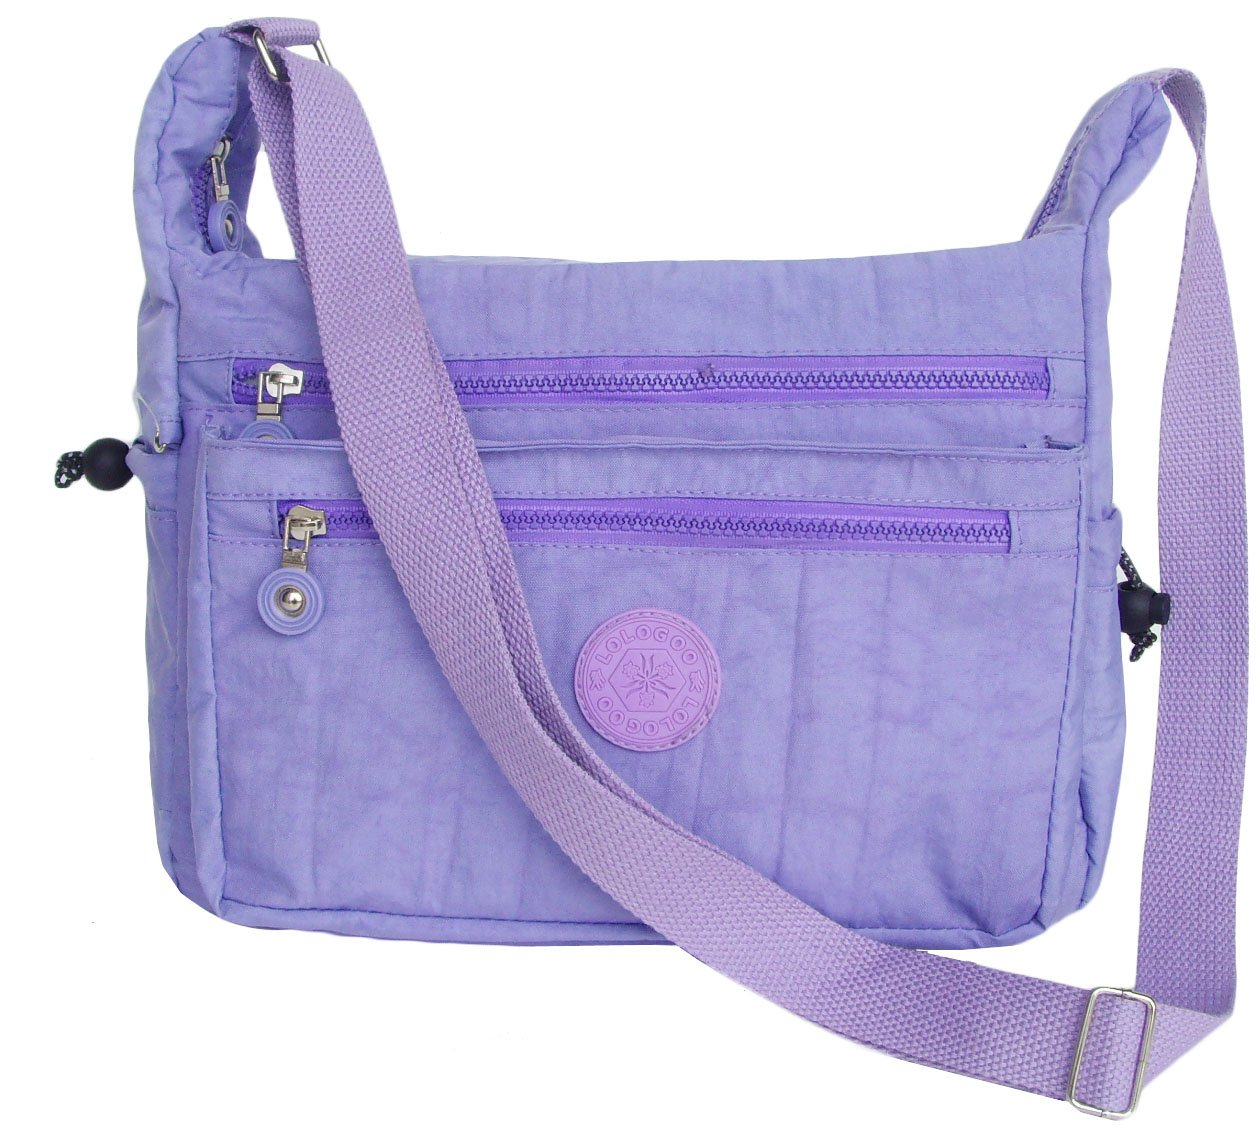 HONG YE Pure Stripe Slouch Bag,sku:hb80purple3